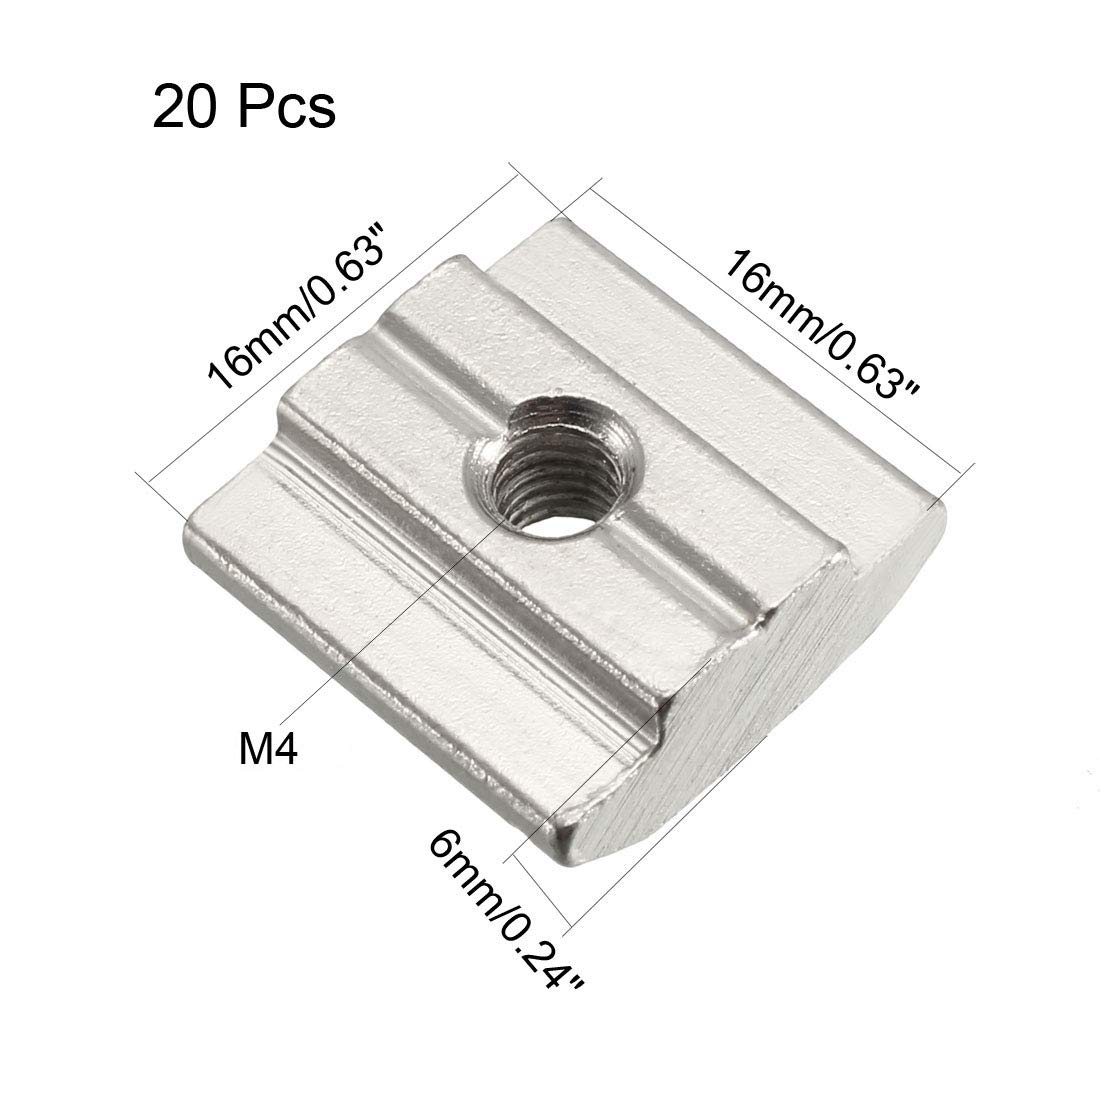 Pack of 20 sourcing map Slide in T-Nut M5 Threaded for 3030 Series Aluminum Extrusions Profile